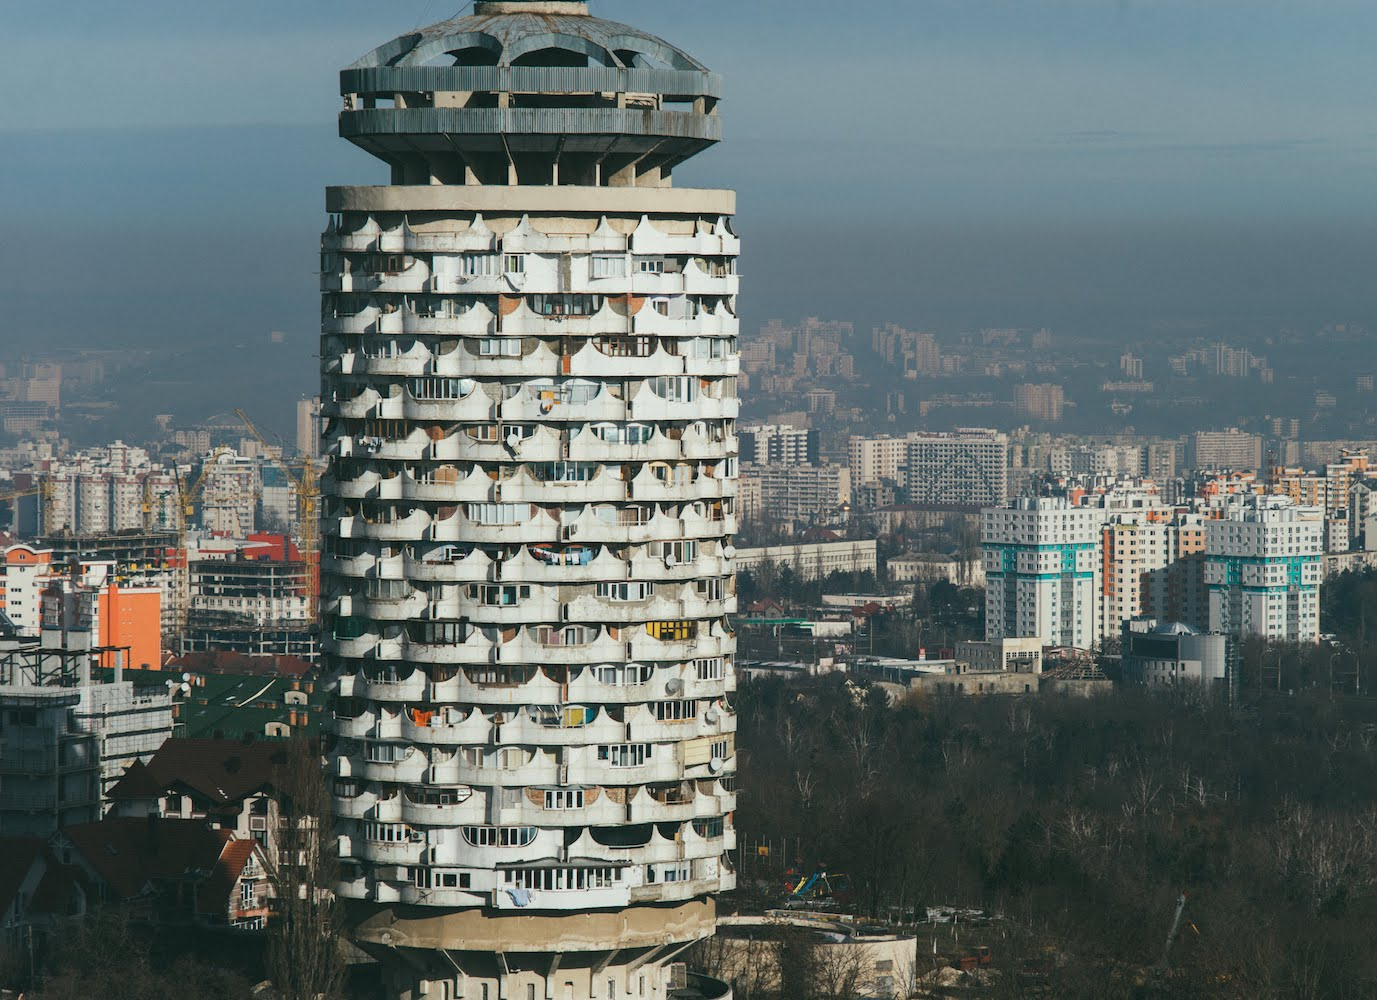 From the sarcastic to the romantic, this account takes a new look at Eastern Europe's high rises